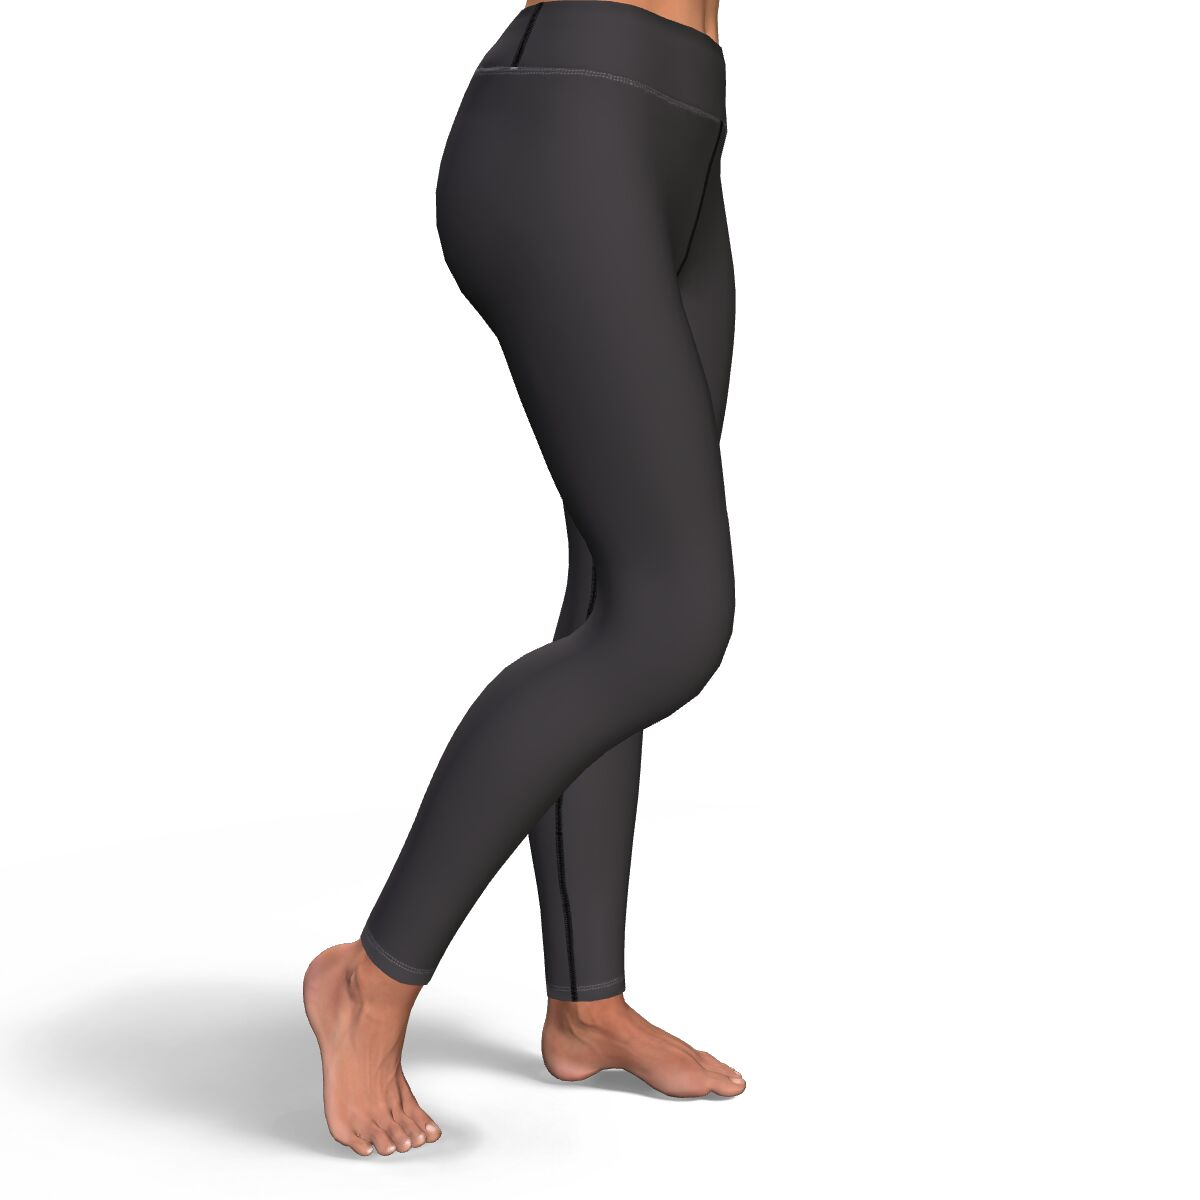 Essential Charcoal Gray Yoga Pants